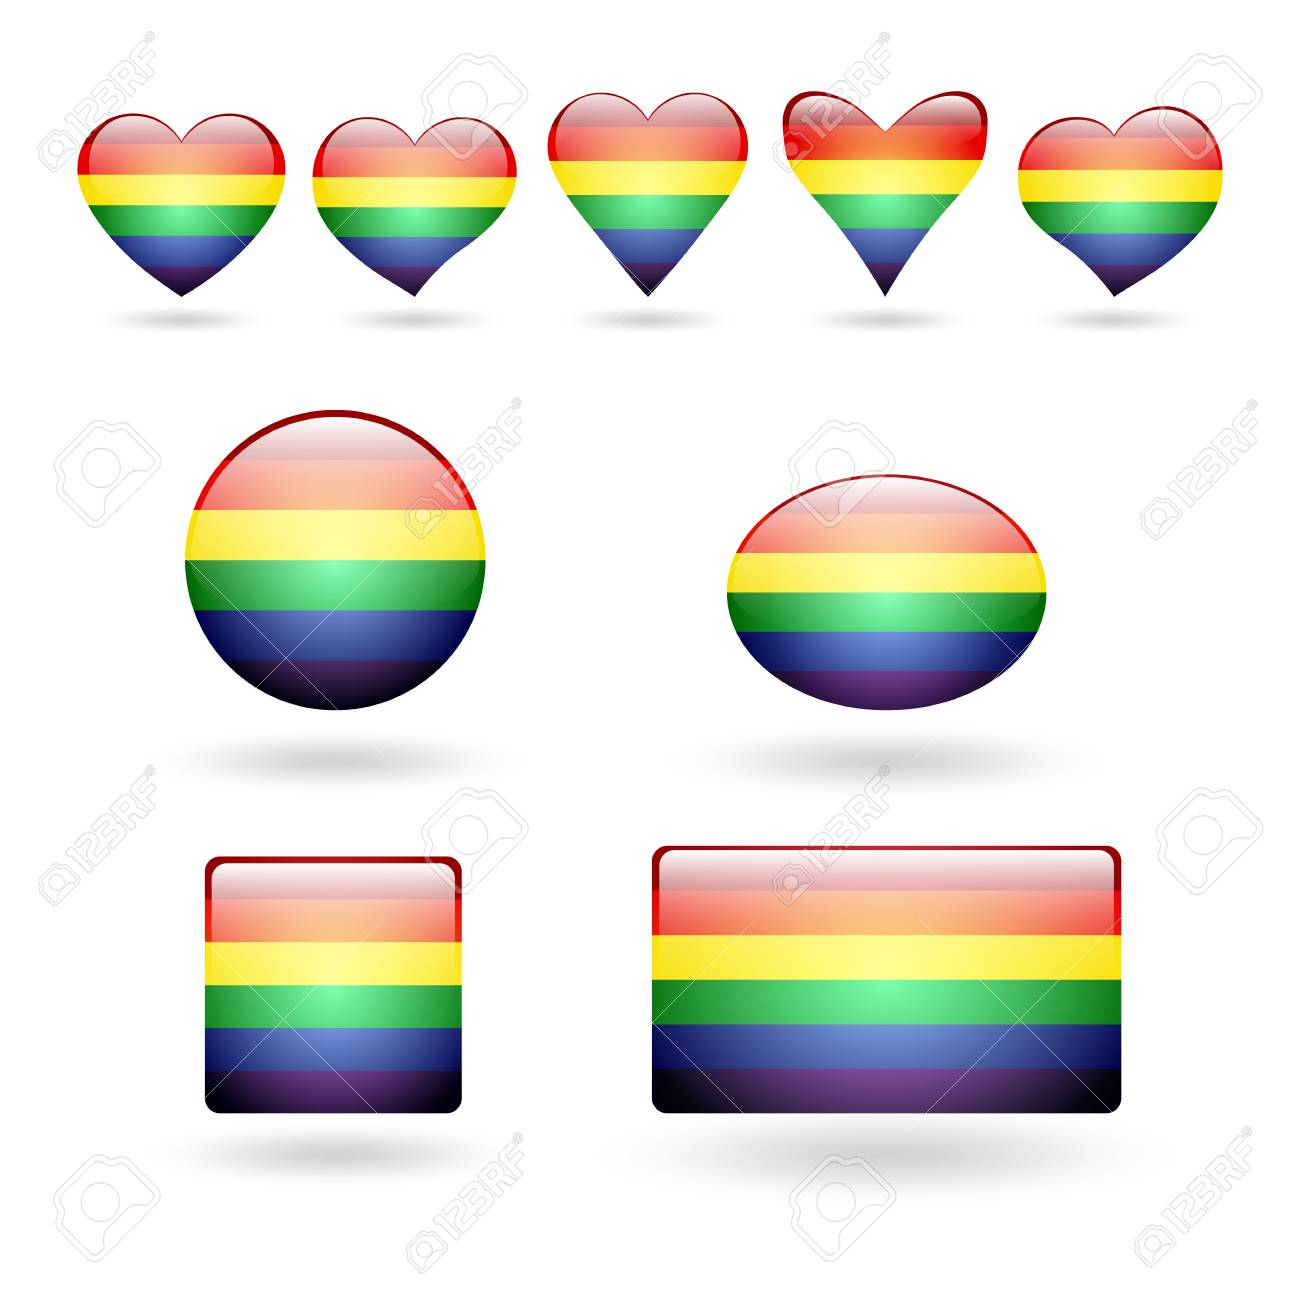 A Set Of Gay Pride Symbols With A Rainbow Flag Coloring 3d Buttons